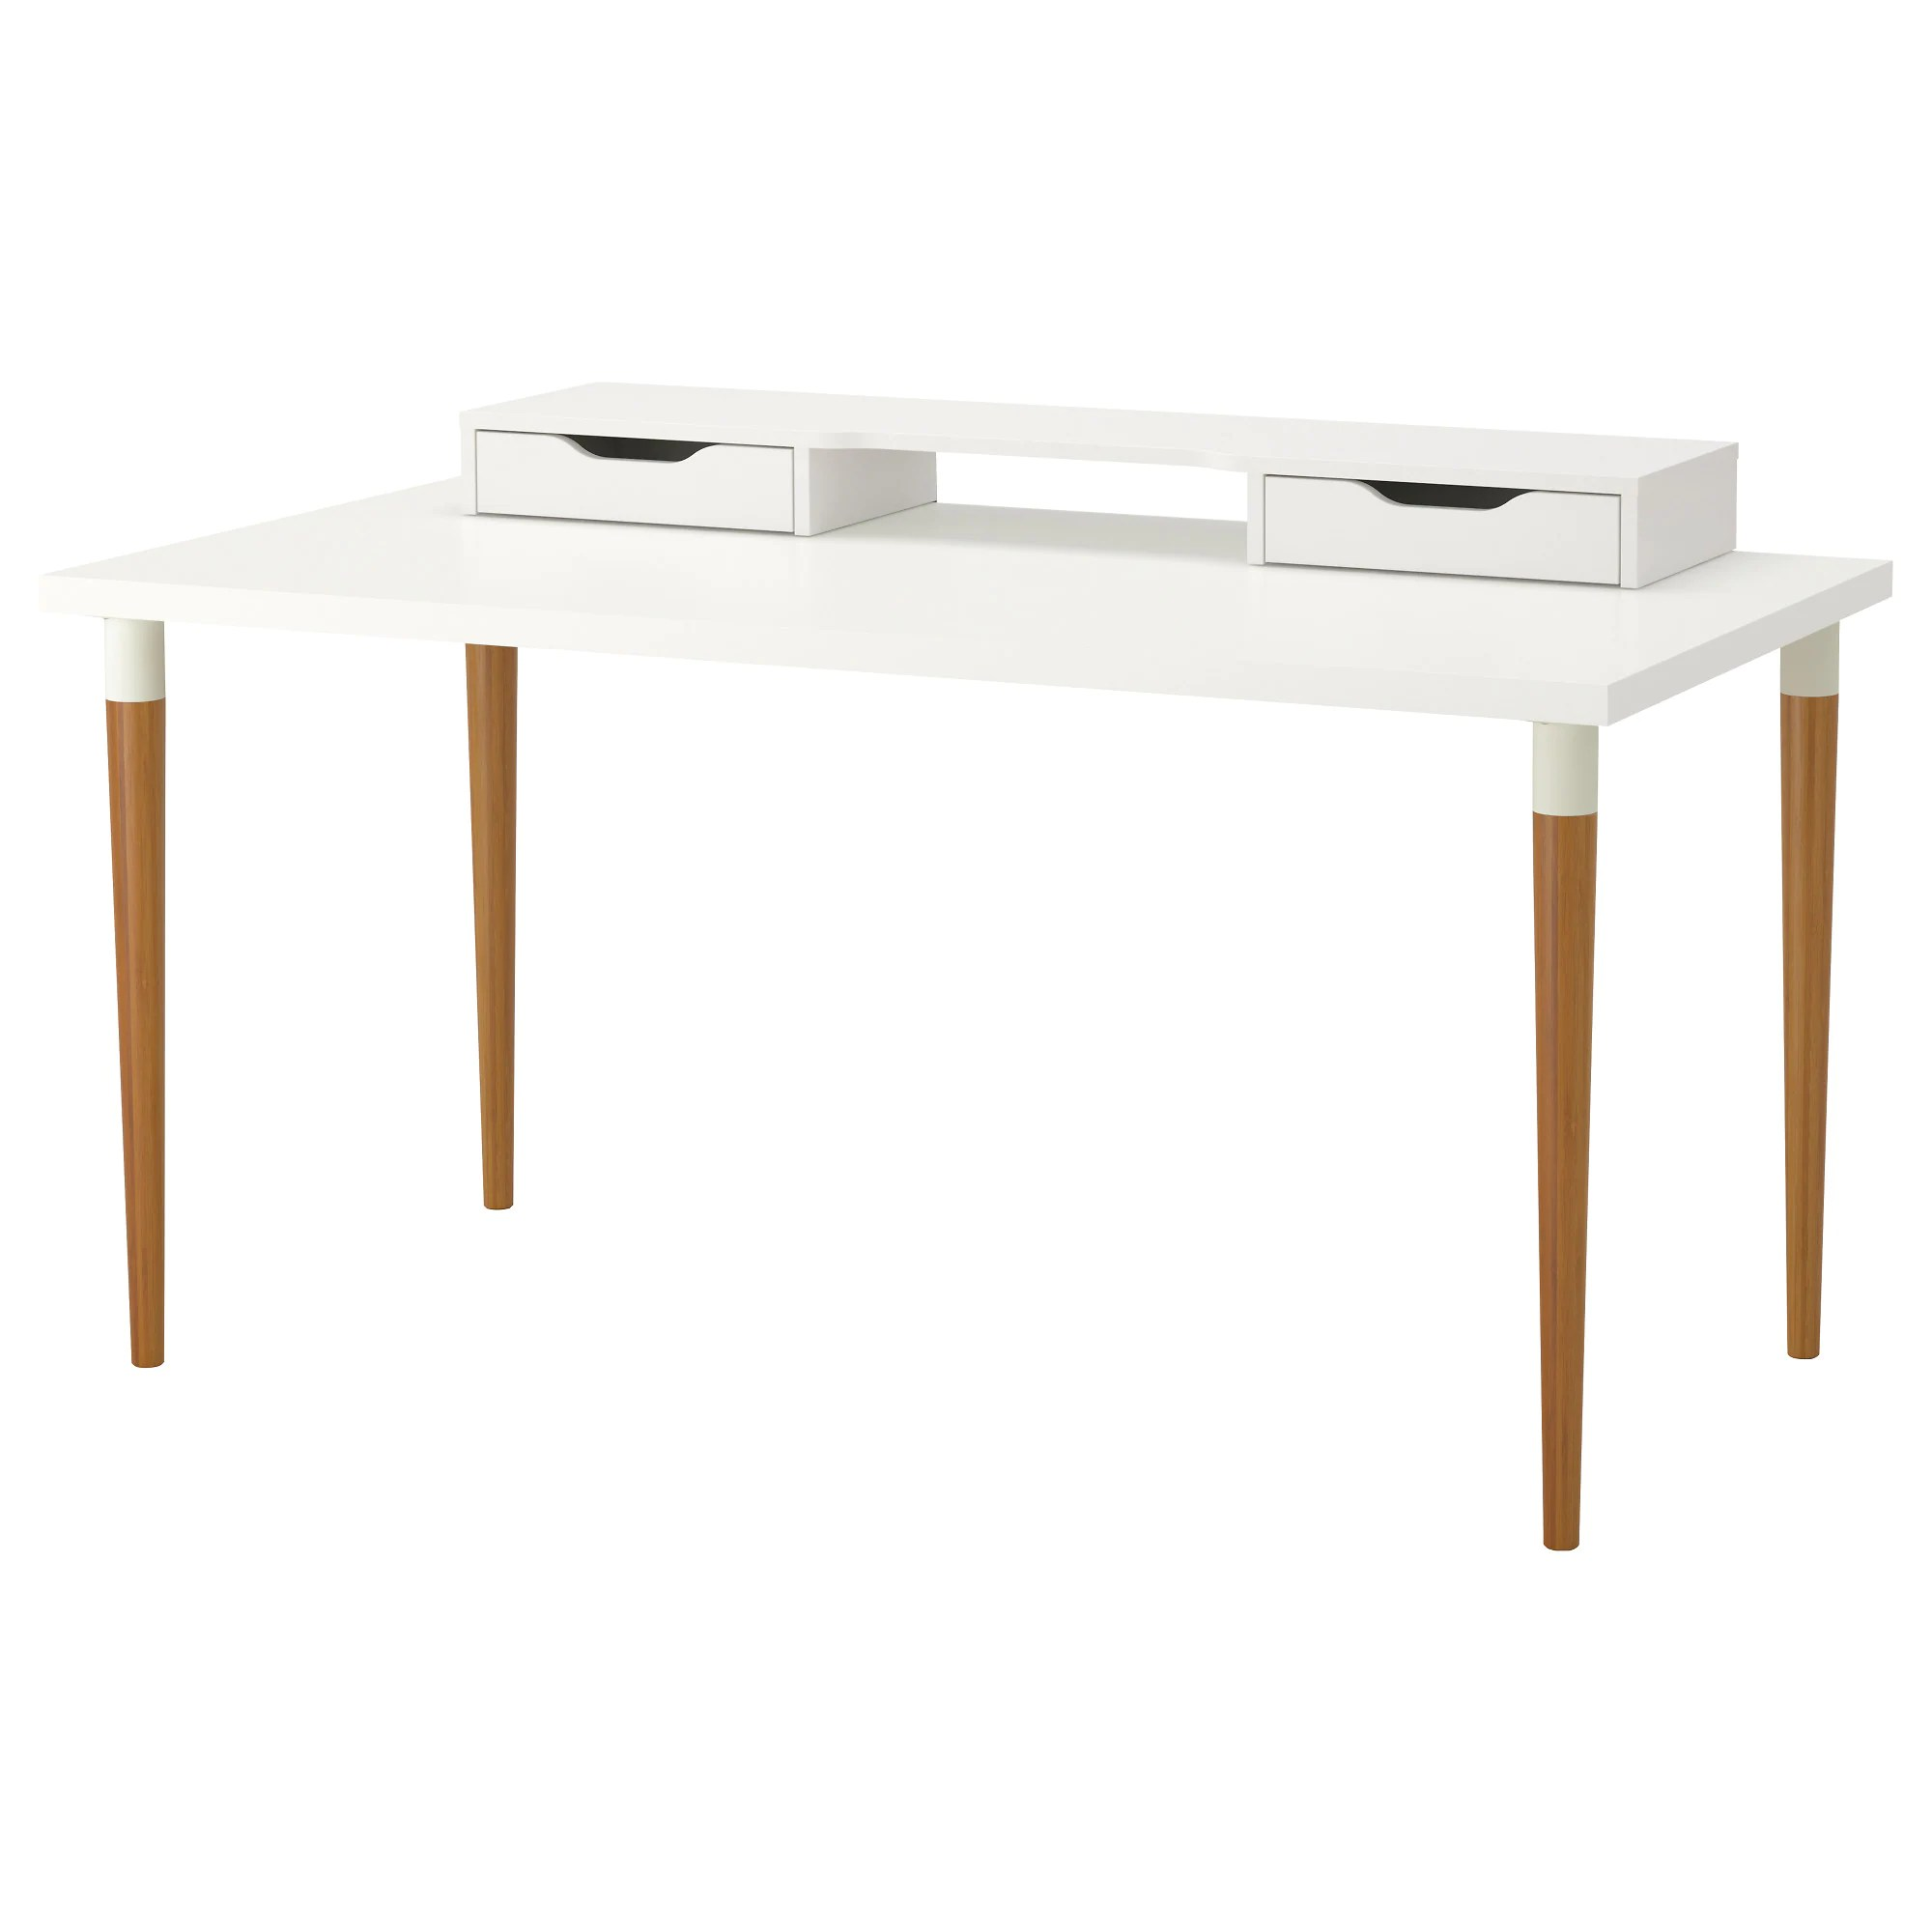 Linnmon Linnmon Hilver Table White Bamboo